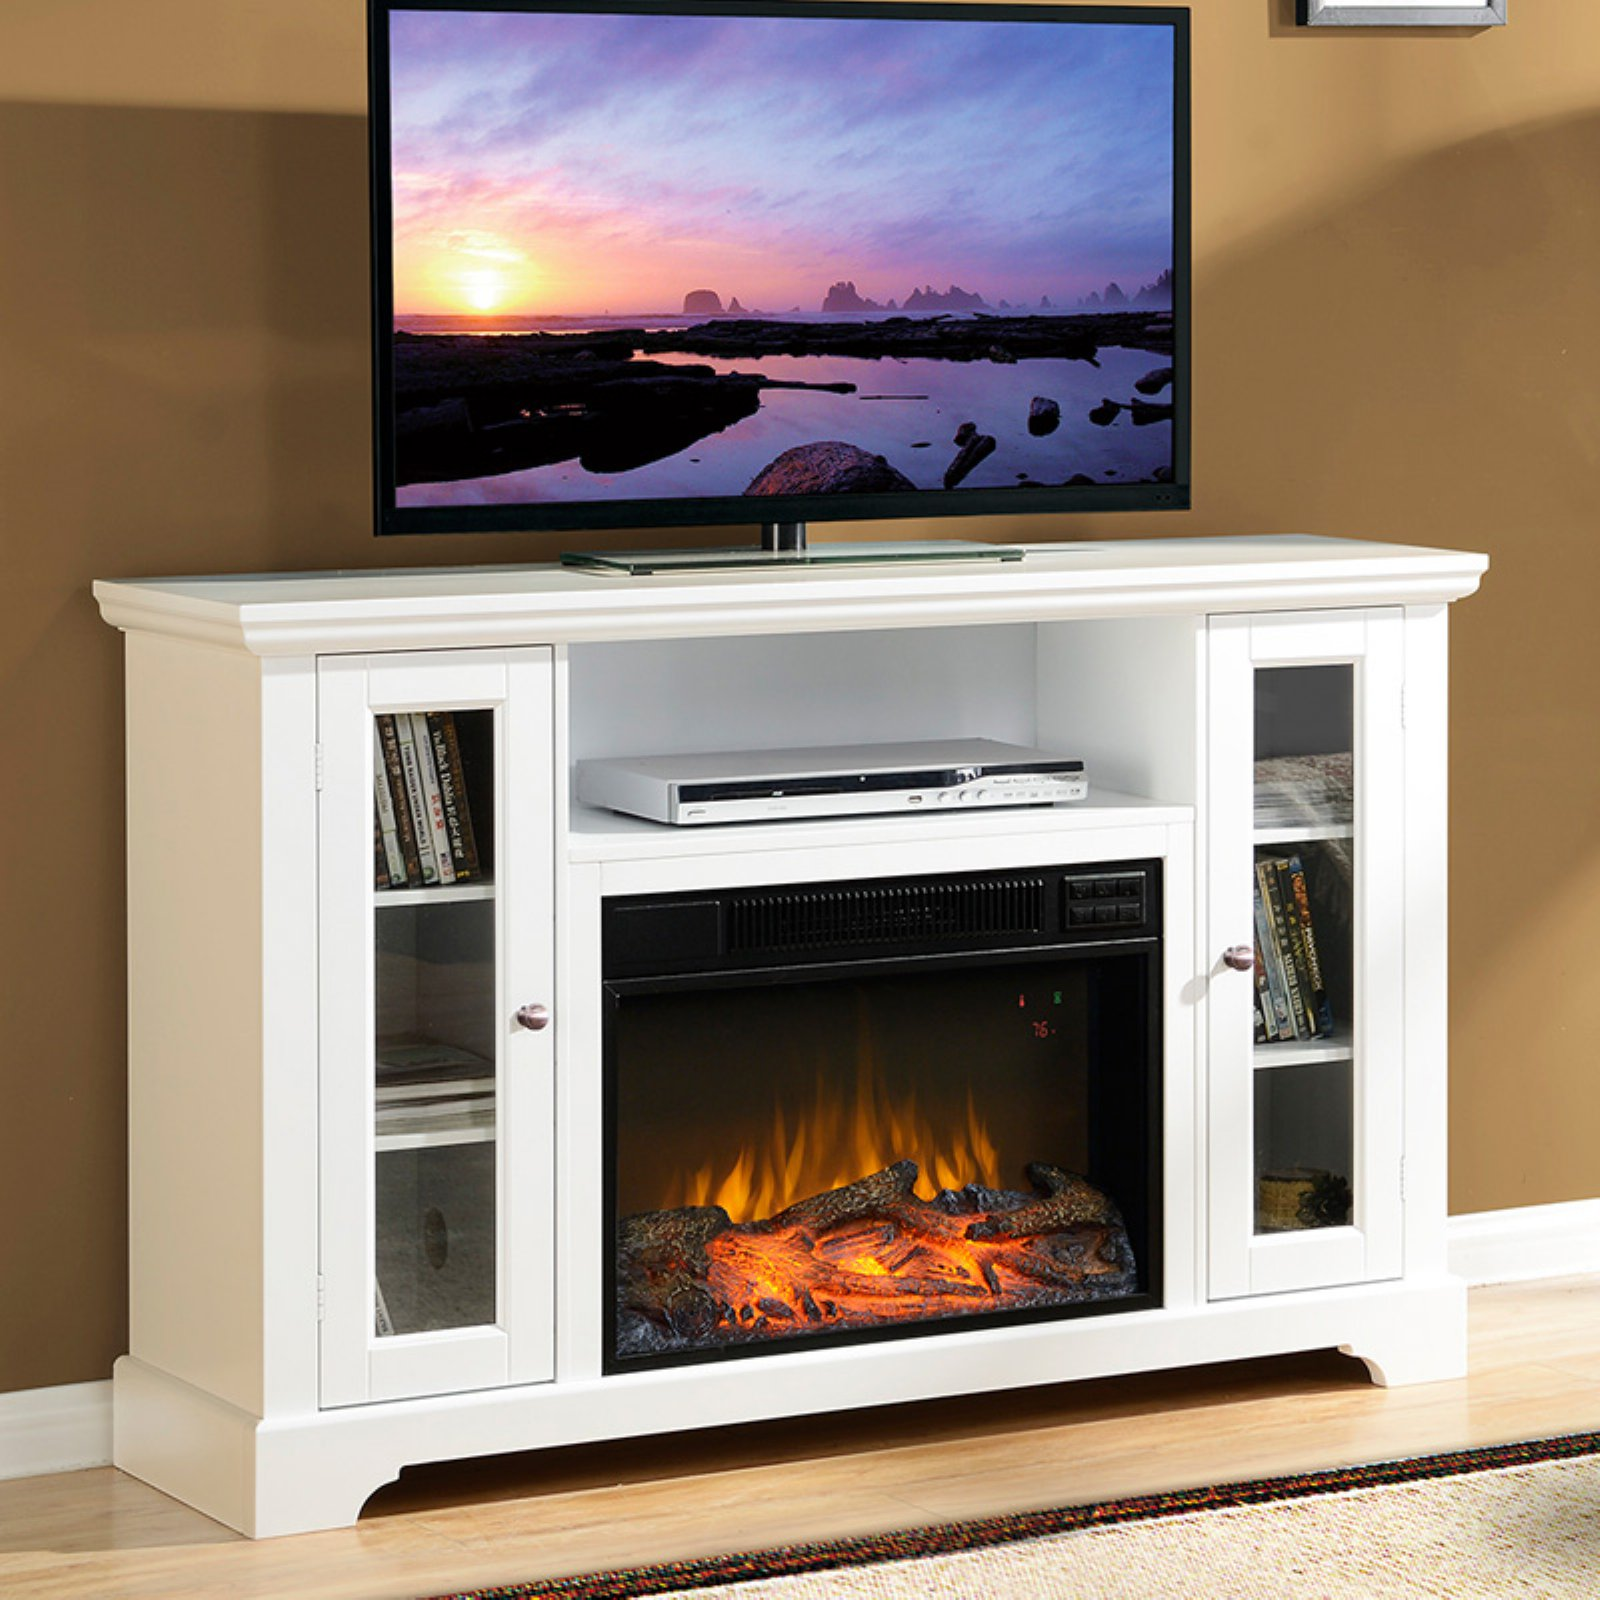 "Flamelux Queenston Fireplace for TVs up to 55"" in White"